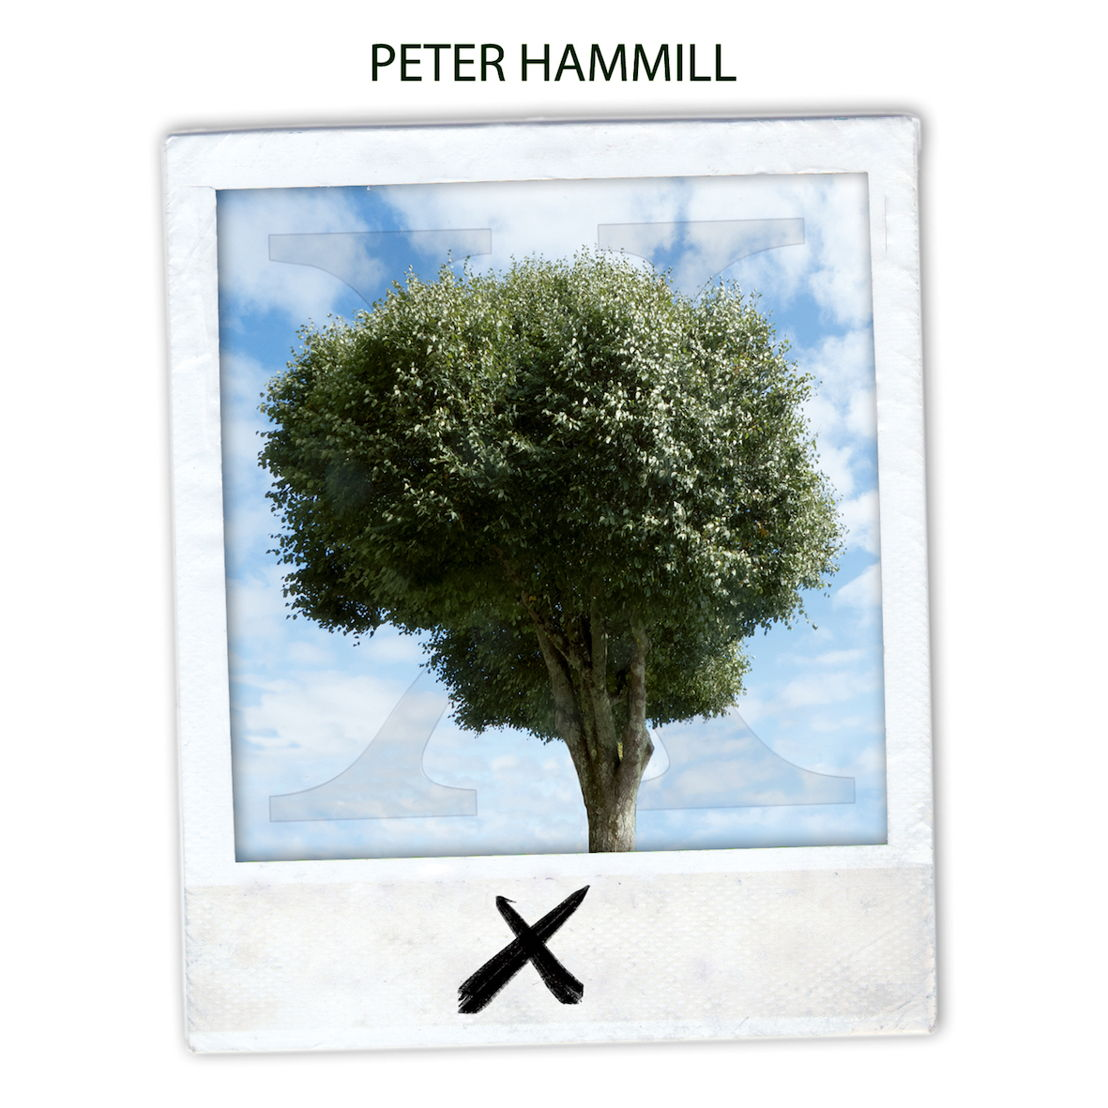 PETER HAMMILL X/Ten Album cover artwork